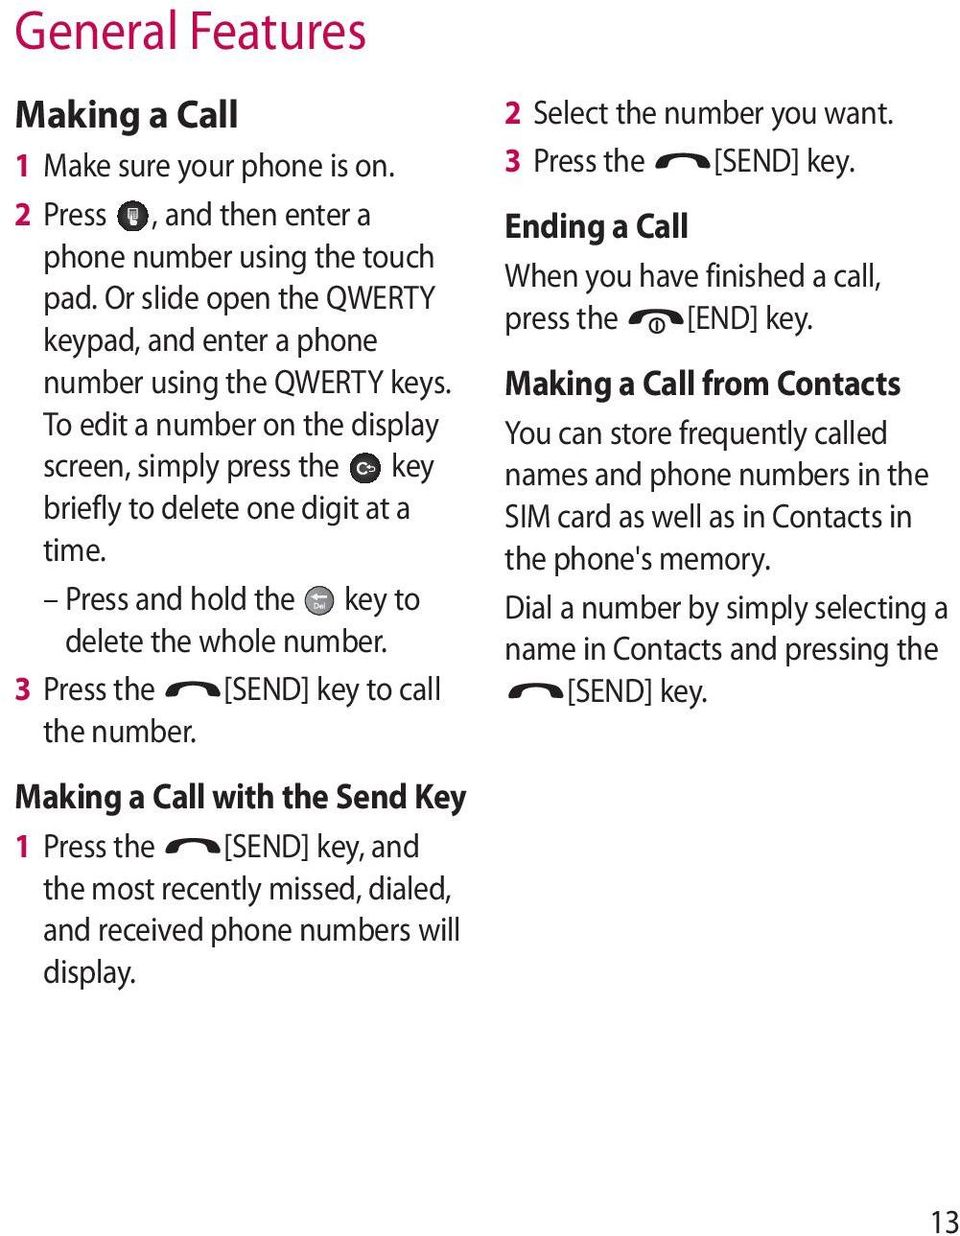 Press and hold the key to delete the whole number. 3 Press the [SEND] key to call the number.